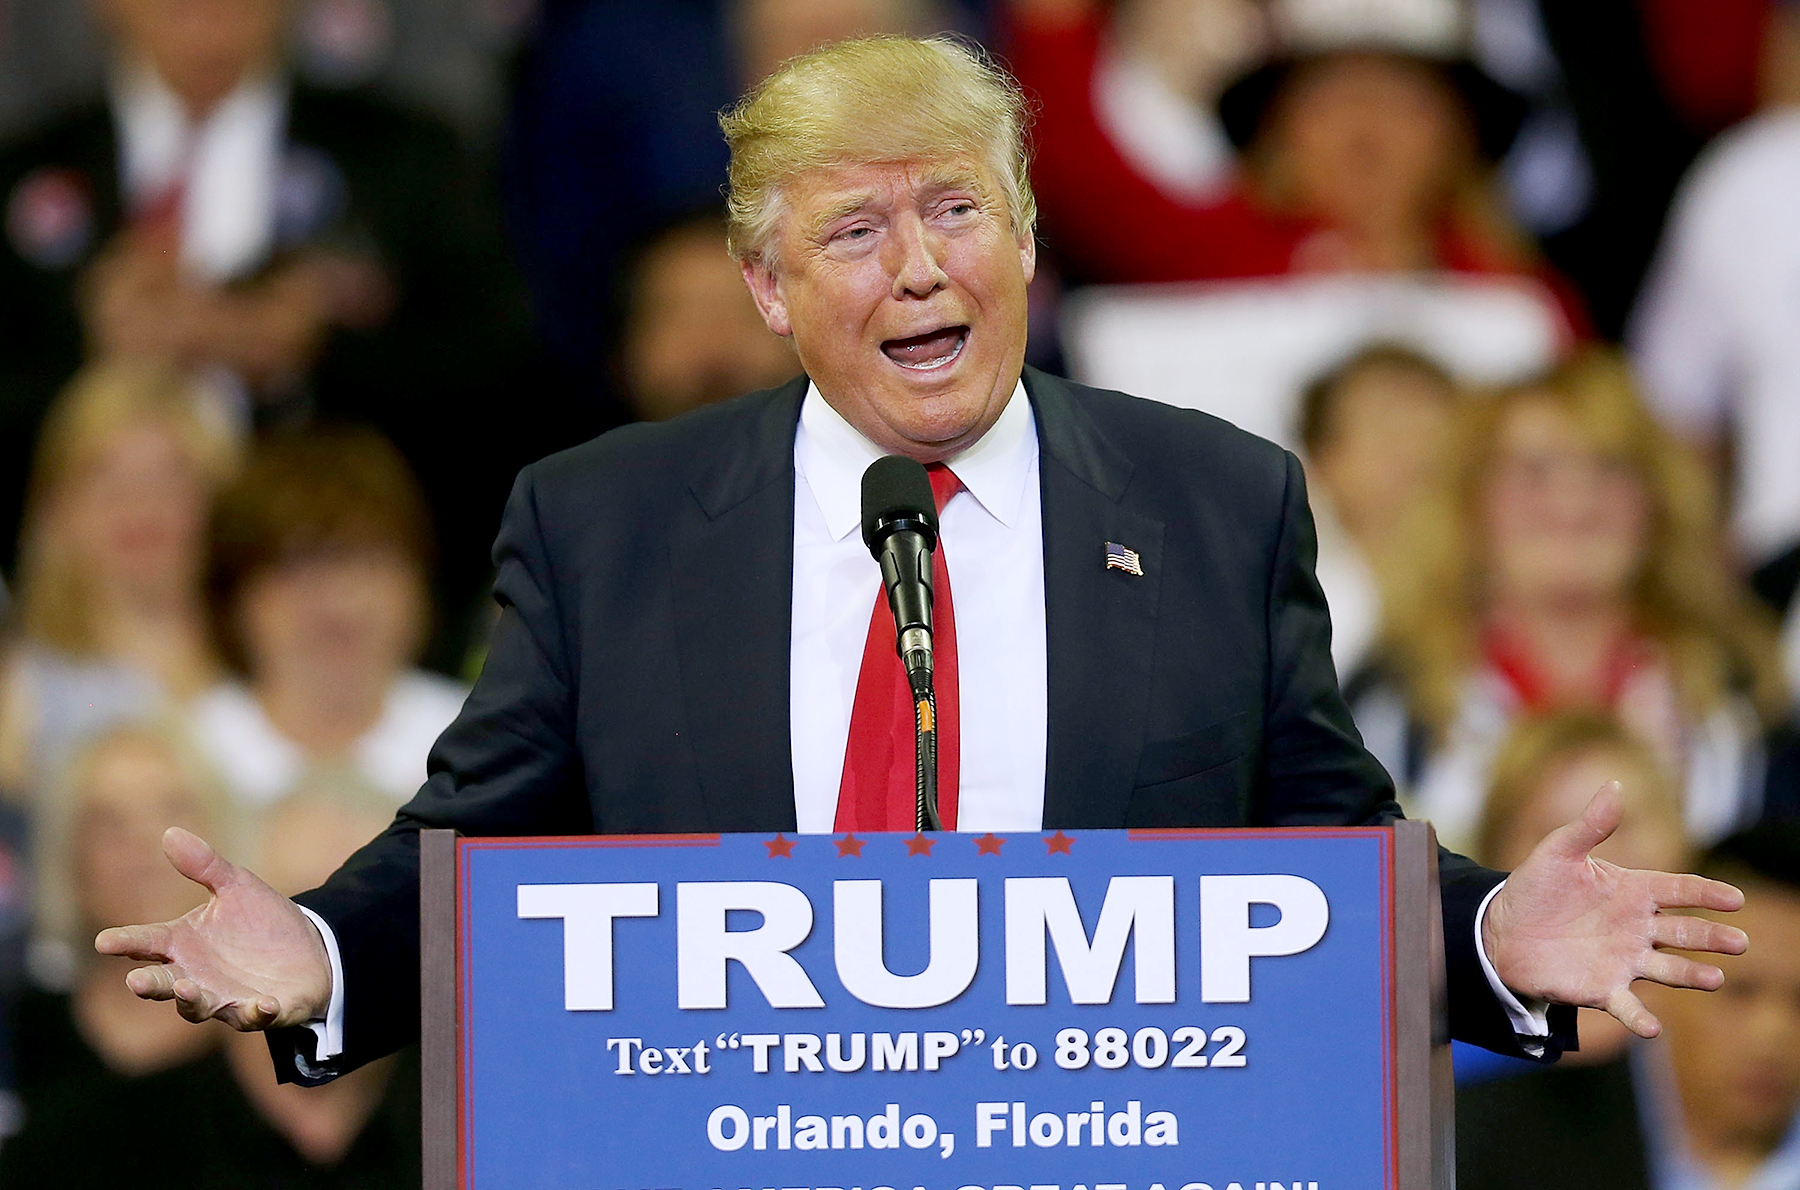 Republican presidential candidate Donald Trump speaks at the CFE Arena during a campaign stop on the campus of the University of Central Florida on March 5, 2016 in Orlando, Florida.